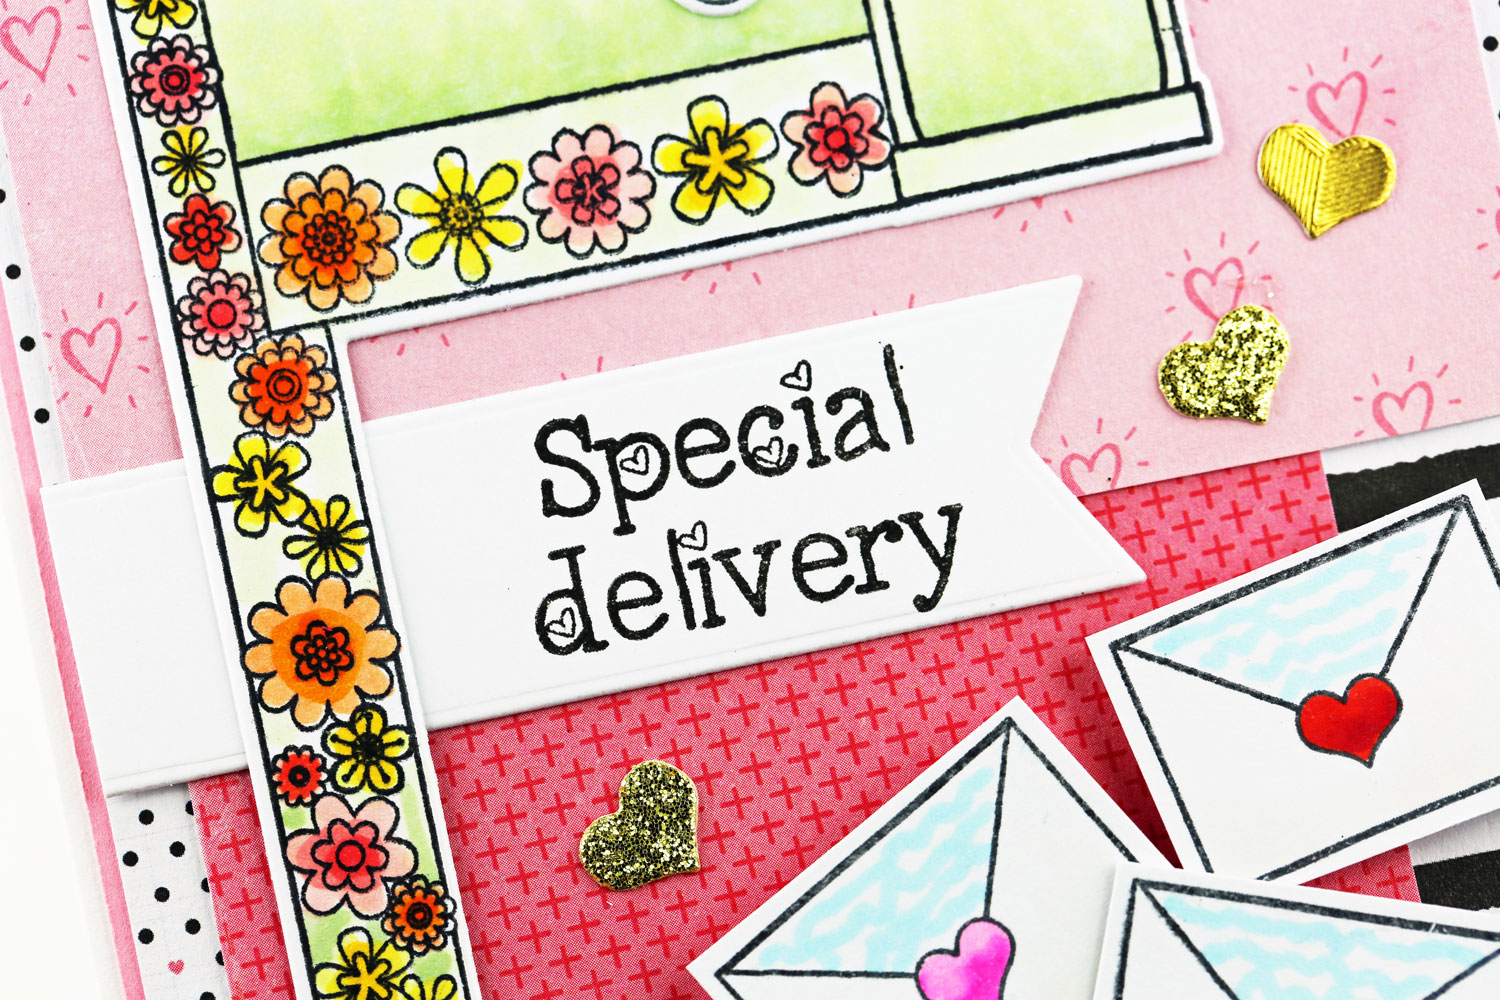 Special Delivery - One